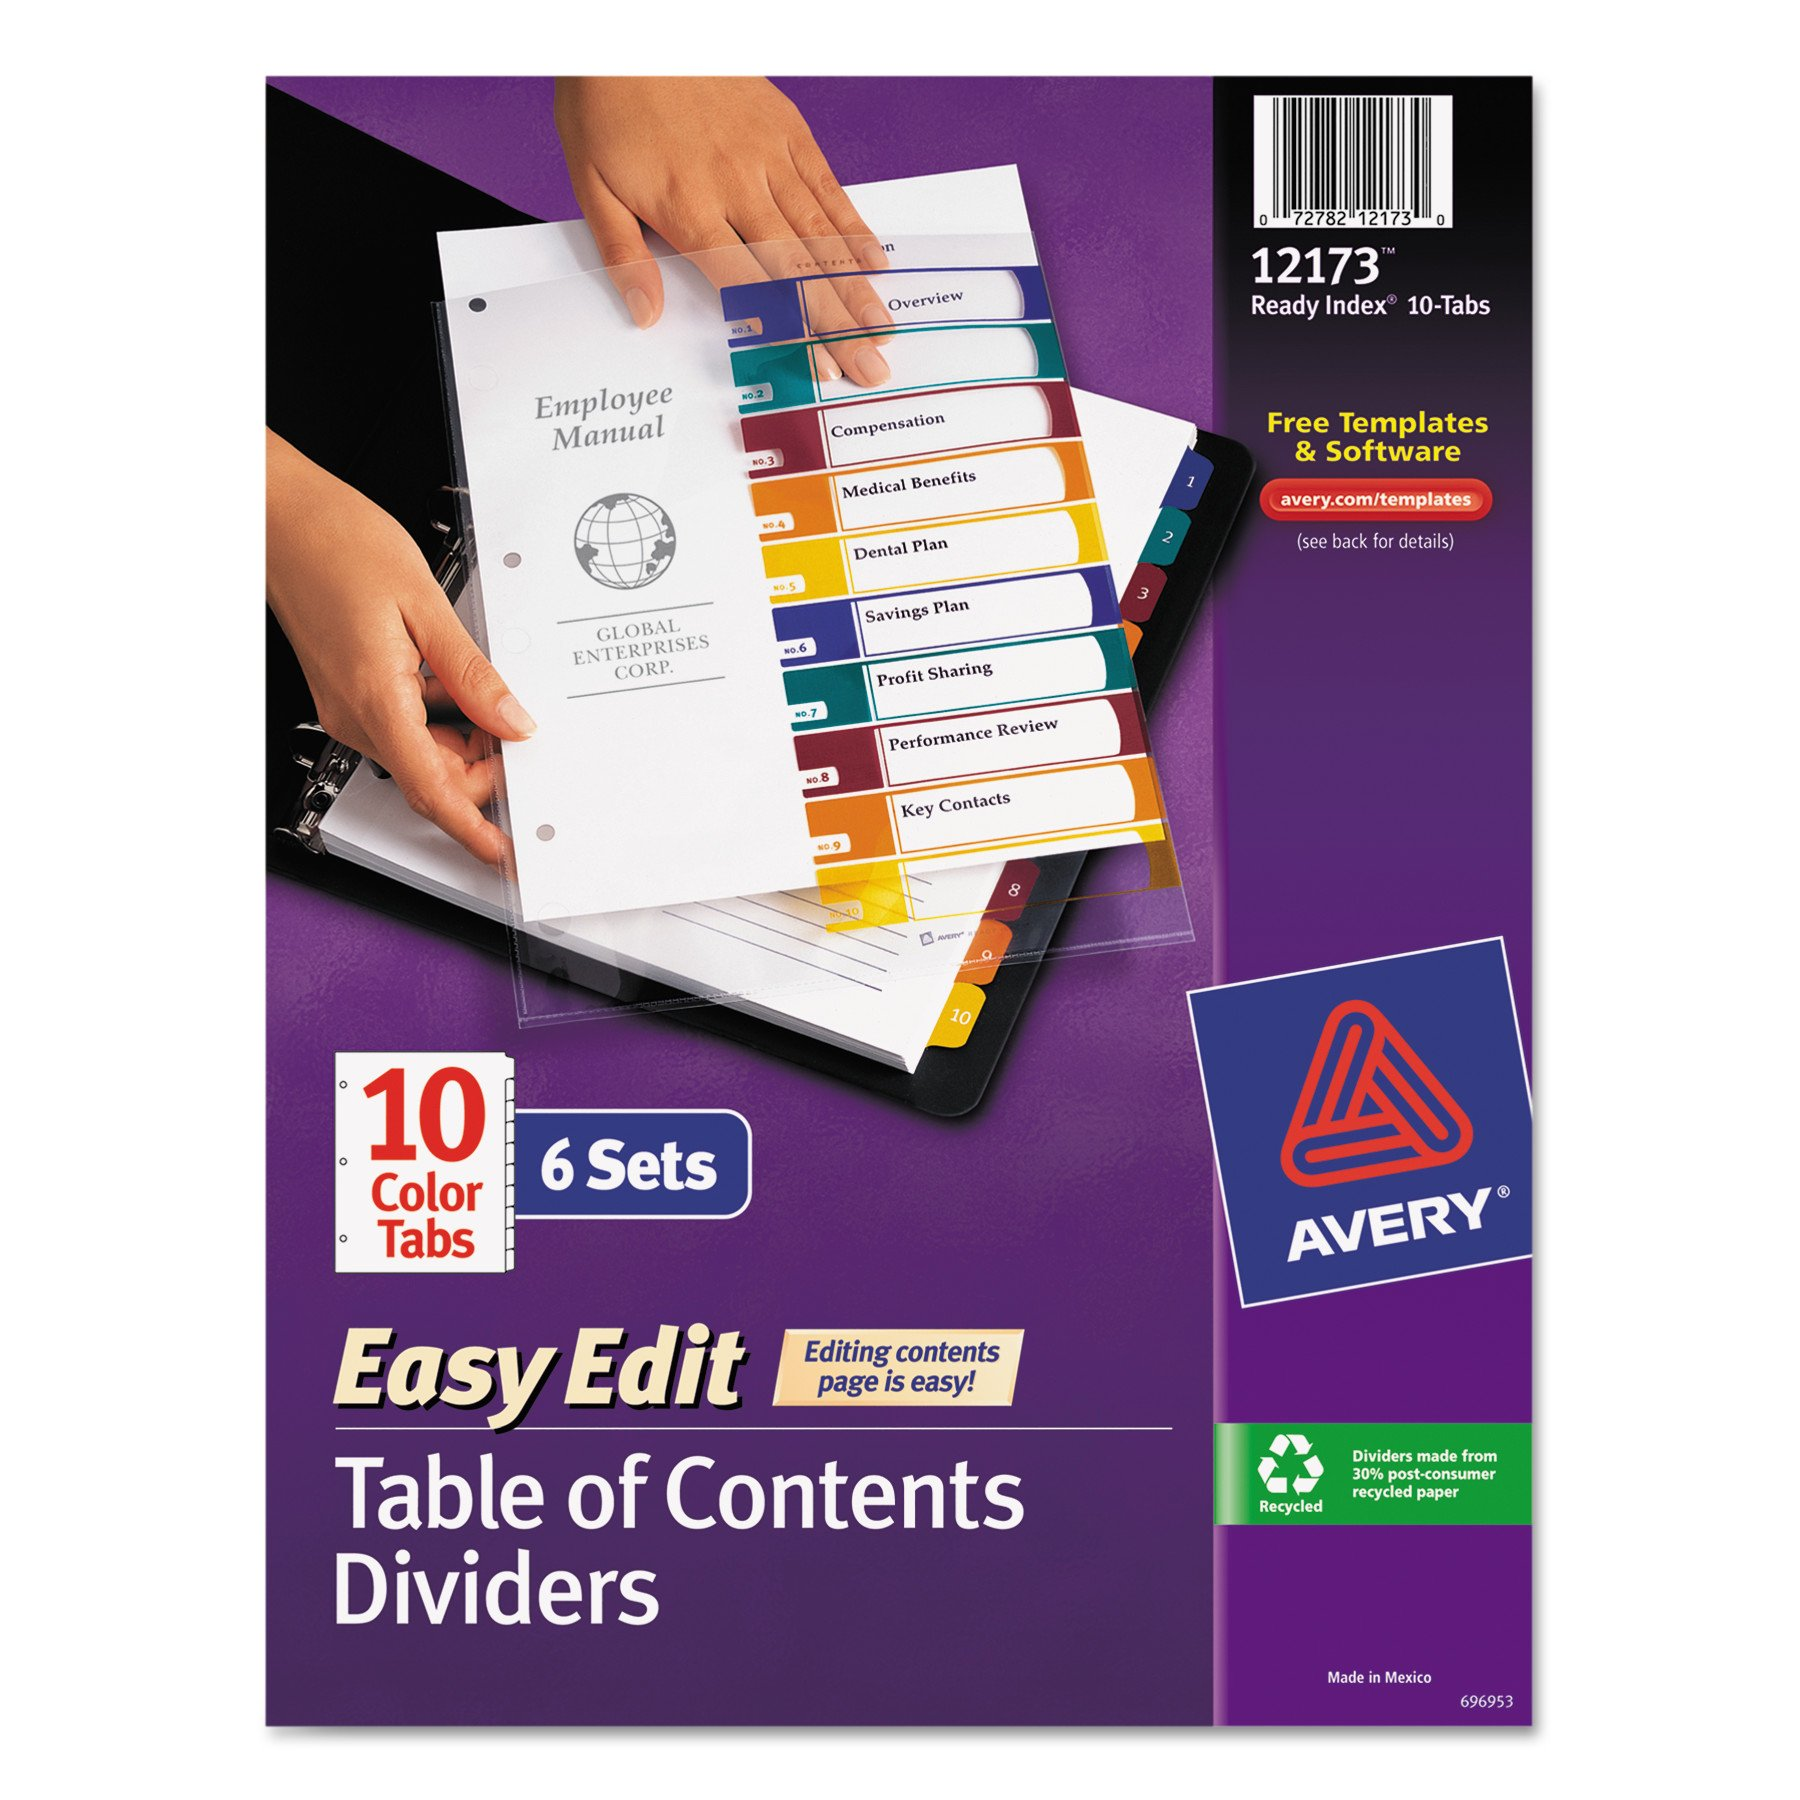 Avery Ready Index Easy Edit Table of Contents Dividers, 10-Tab, 6 Sets (12173) by AVERY